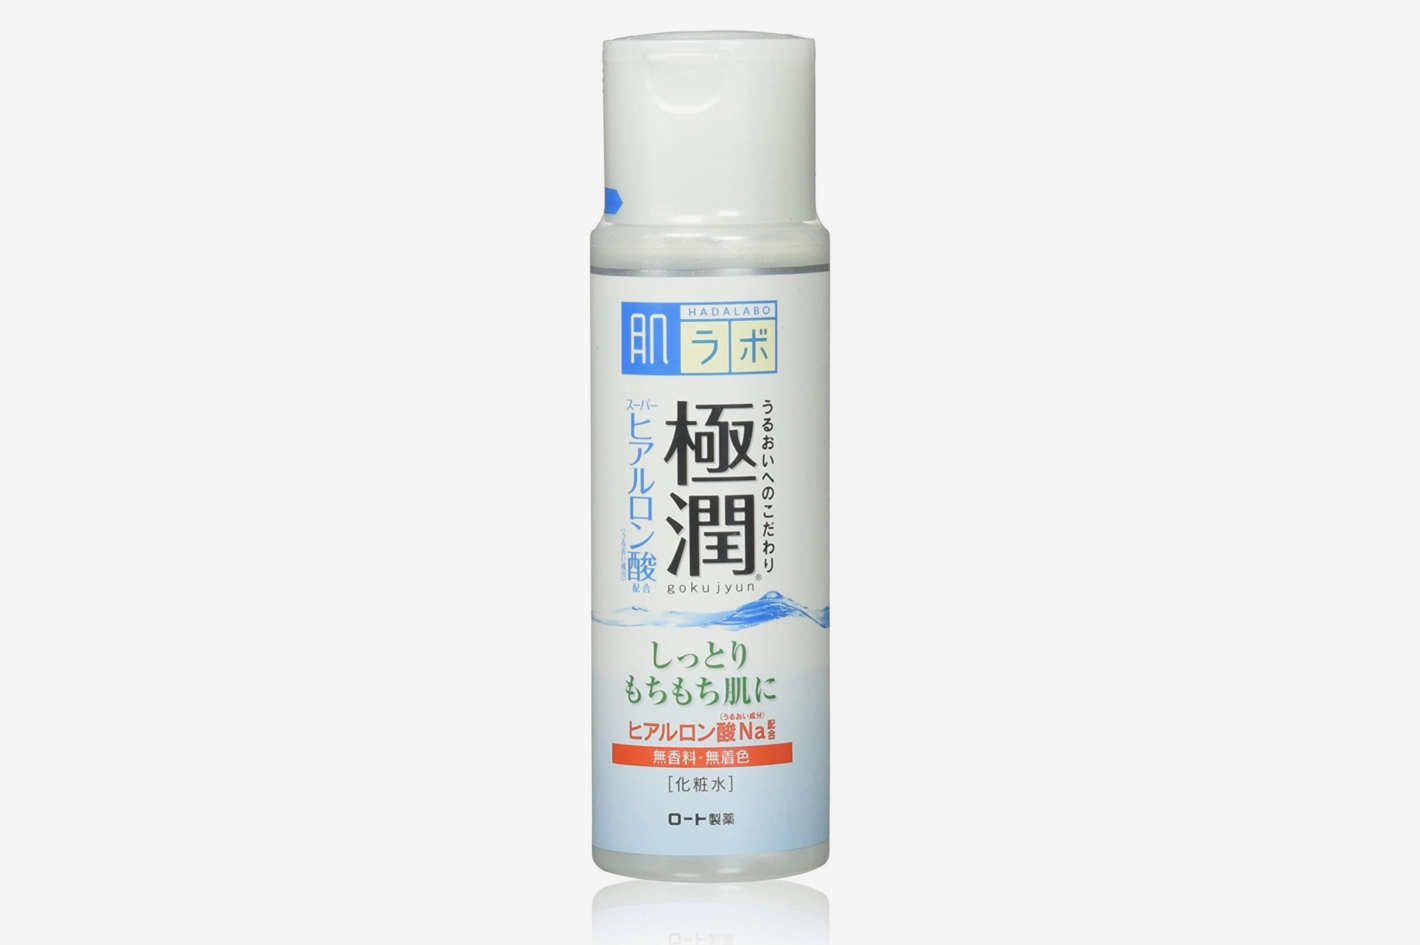 The Best Japanese Skin Care On Amazon According To Hyperenthusiastic Reviewers Japanese Skincare Skin Care Dhc Deep Cleansing Oil